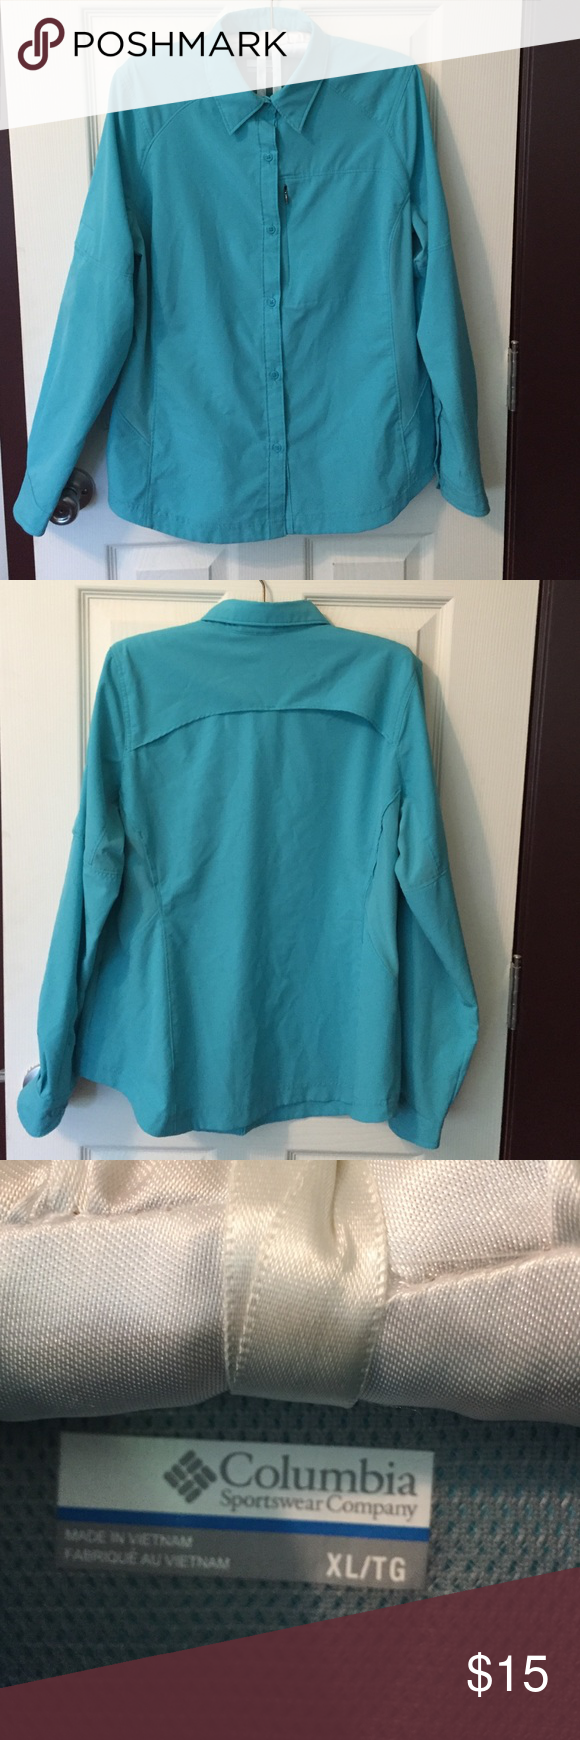 Columbia Trail Shirt Bright Teal blue color! Great condition! Only worn twice. Columbia Tops Button Down Shirts